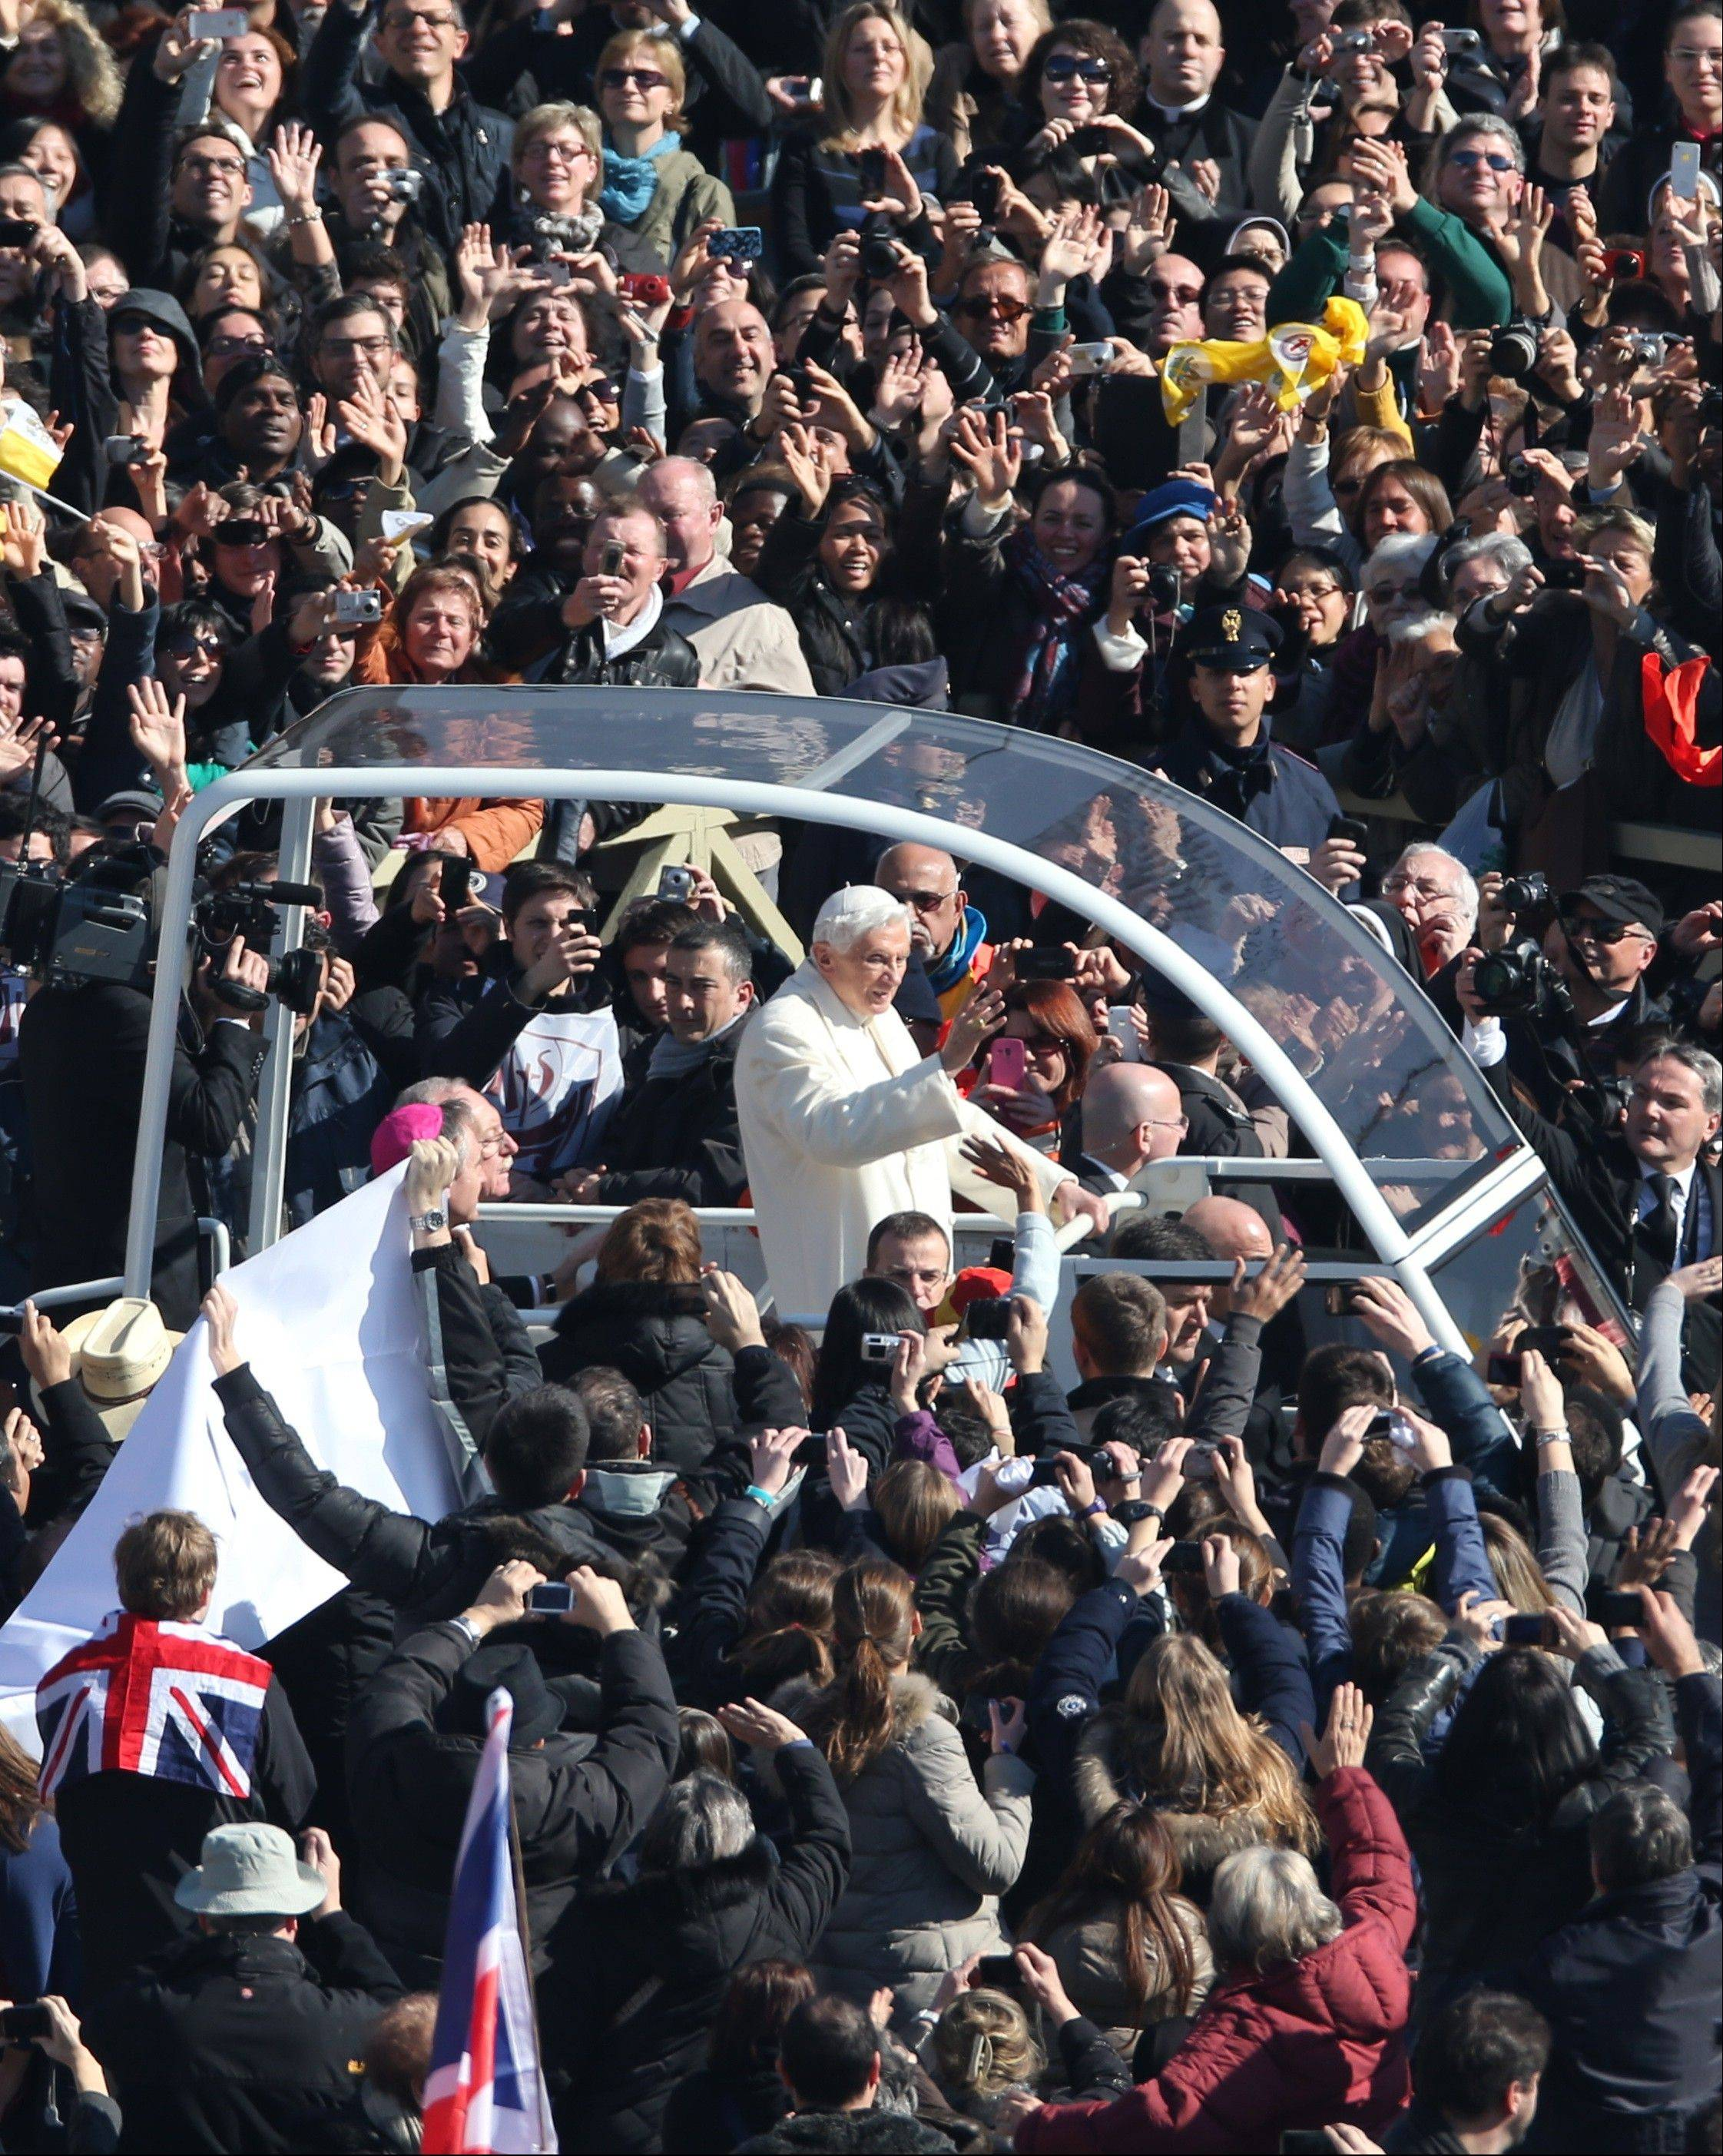 Pope Benedict XVI greets pilgrims in St. Peter's Square at the Vatican, Wednesday, Feb. 27, 2013 for the final time before retiring, waving to tens of thousands of people who have gathered to bid him farewell Benedict was driven around the square in an open-sided vehicle, surrounded by bodyguards.